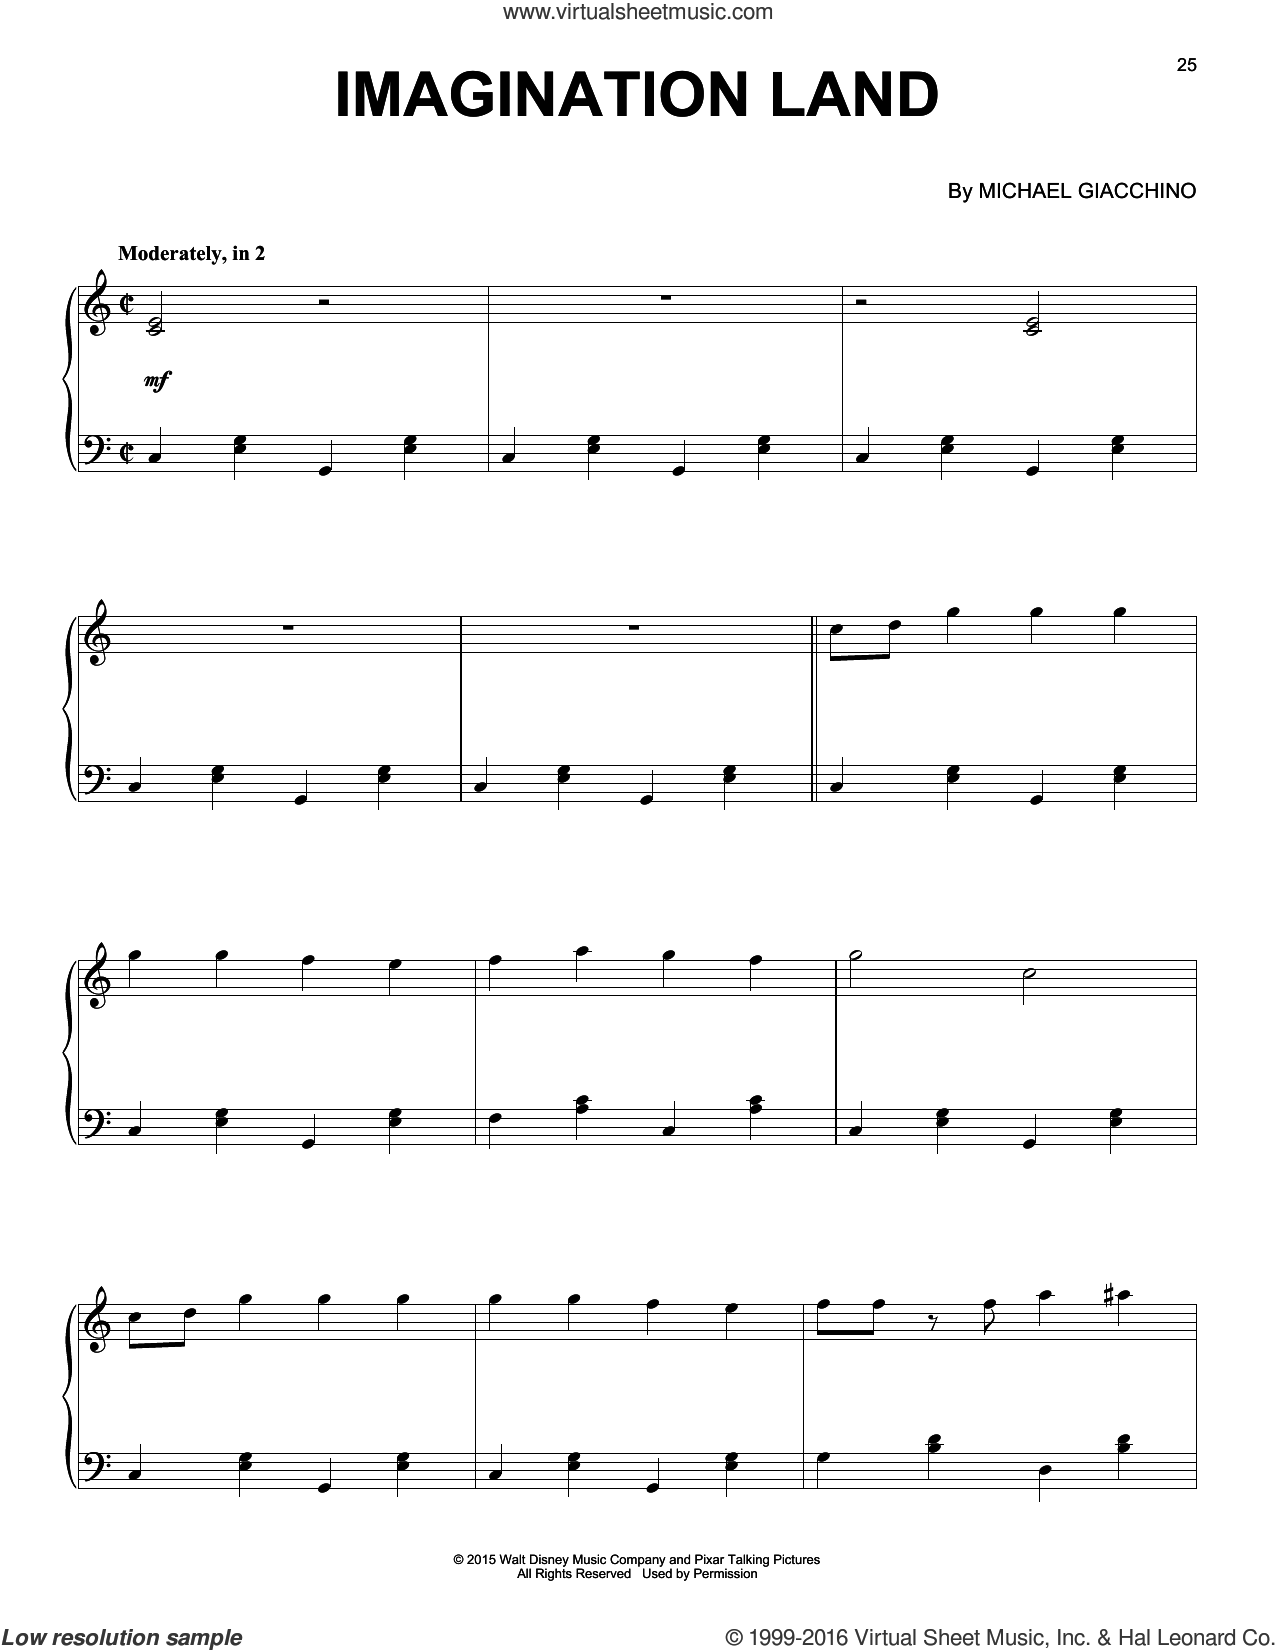 Imagination Land sheet music for piano solo by Michael Giacchino, intermediate skill level